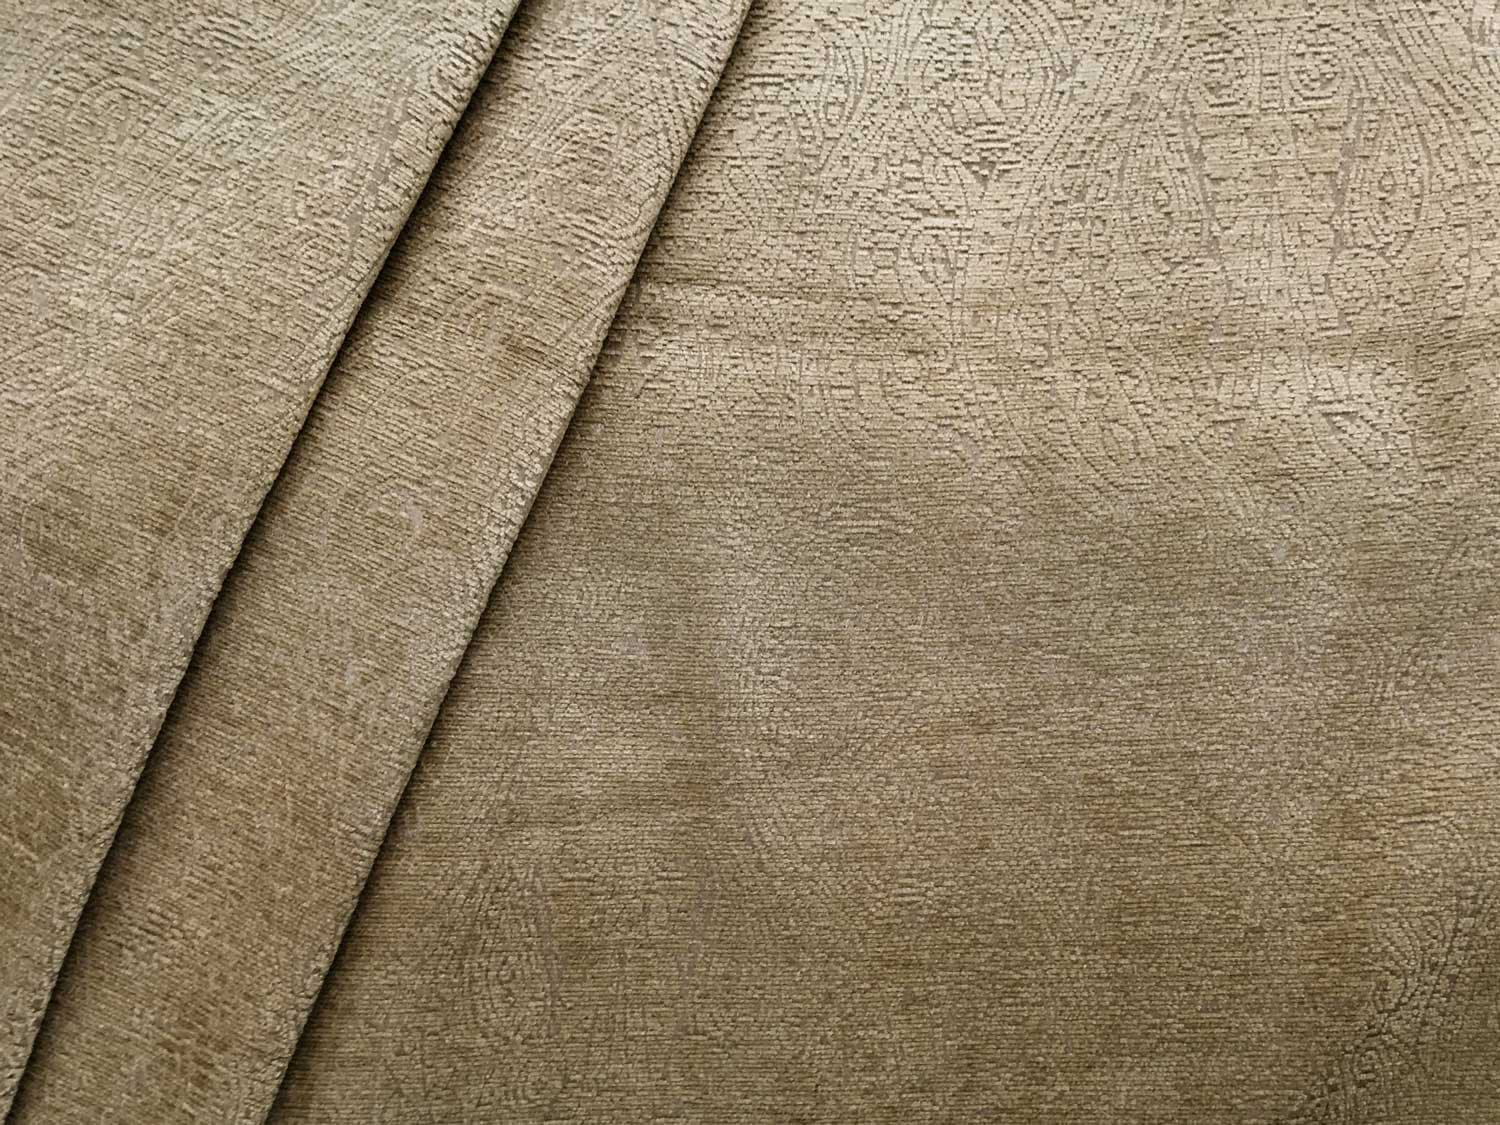 Snow Drapery Upholstery Fabric Tone on Tone Chenille Jacquard Leaf Pattern